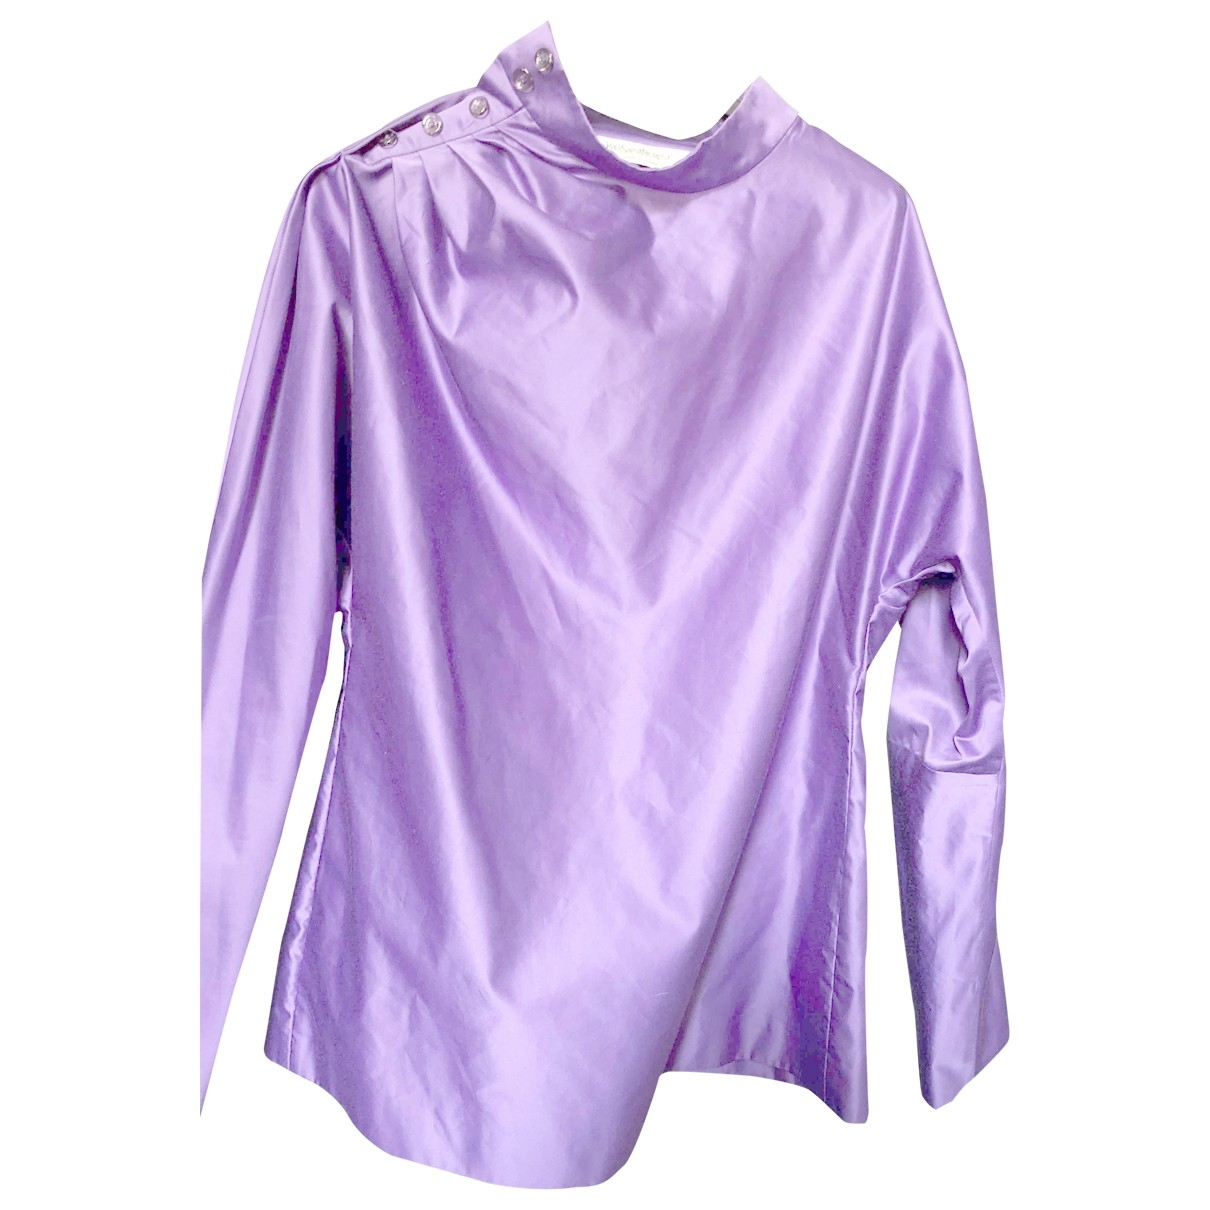 Yves Saint Laurent \N Purple Cotton  top for Women 38 FR